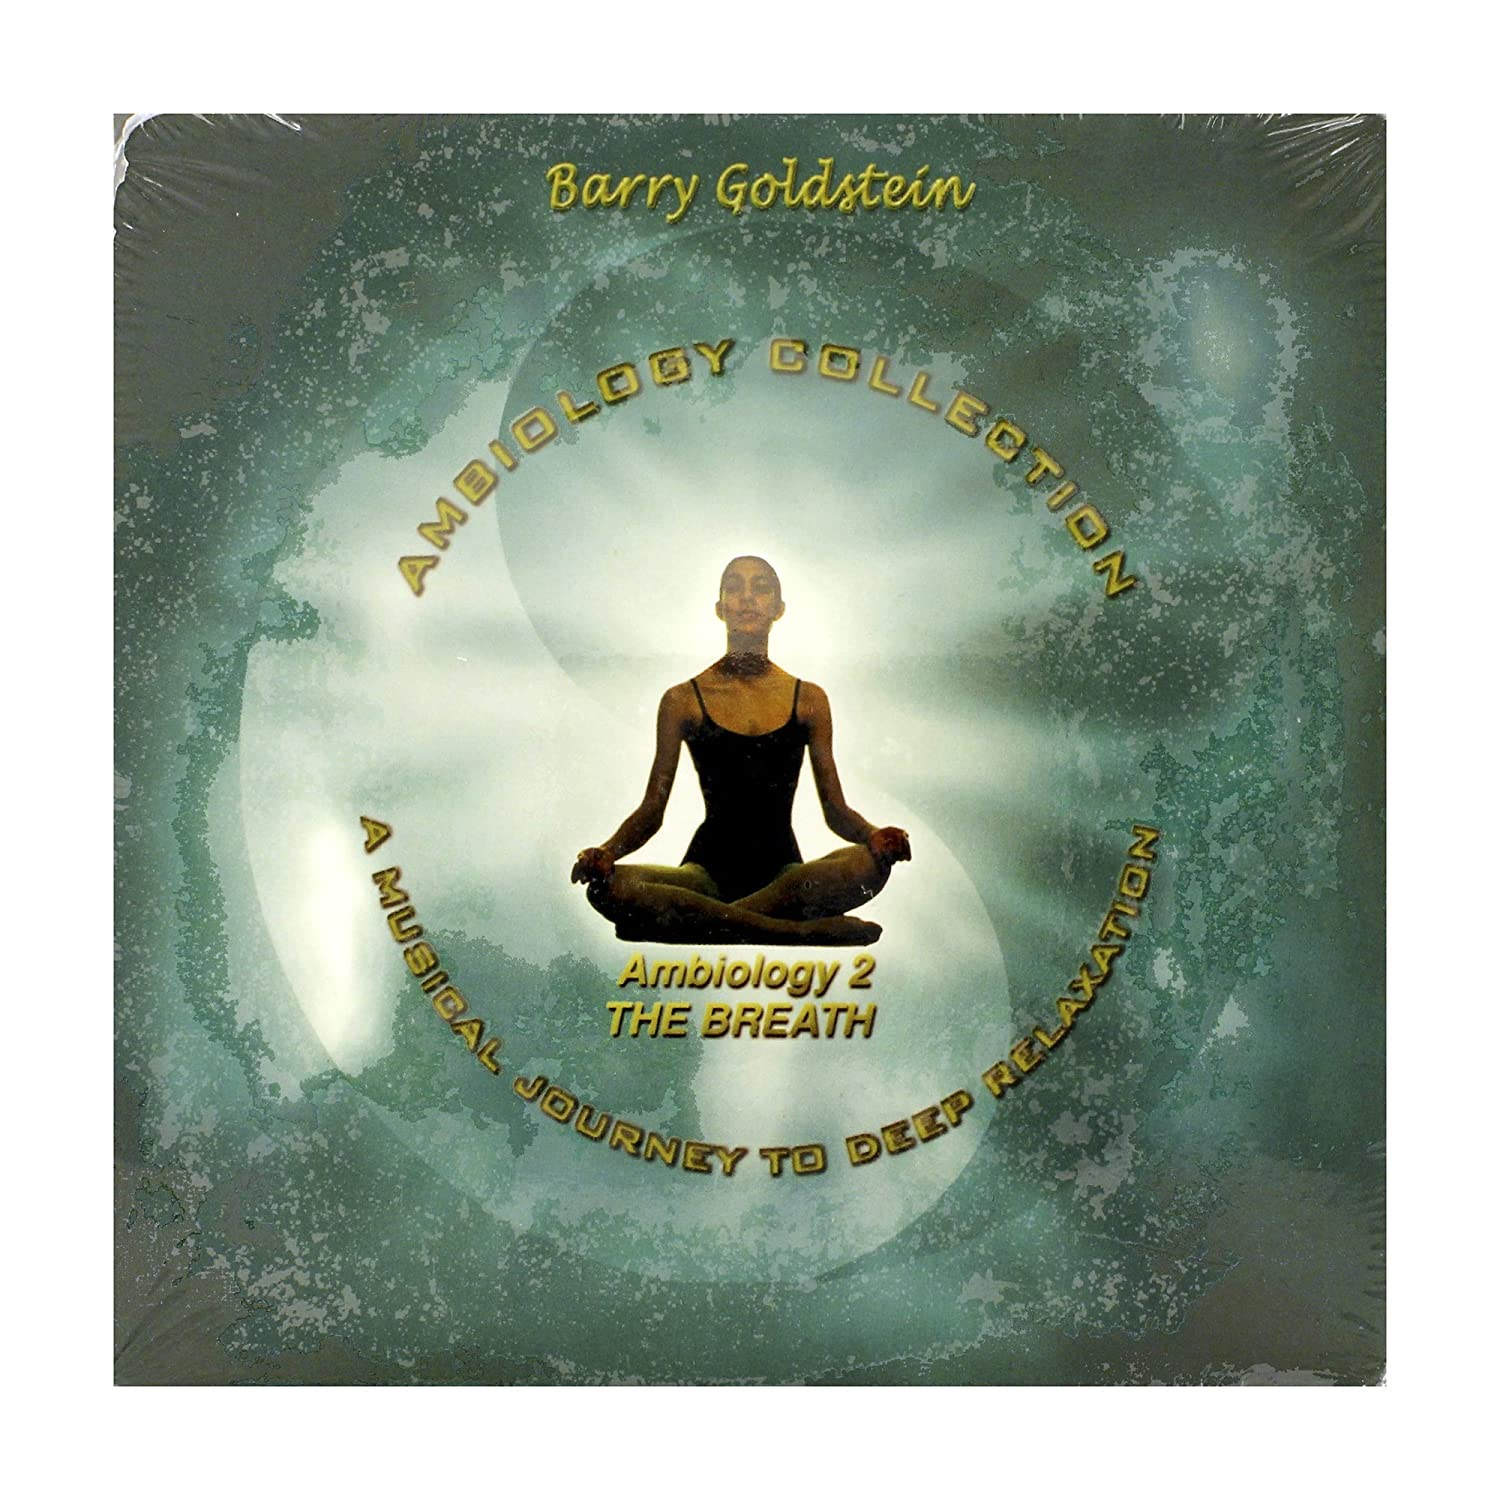 Amazon.com: Barry Goldstein Music Ambiology 2: The Breath CD ...